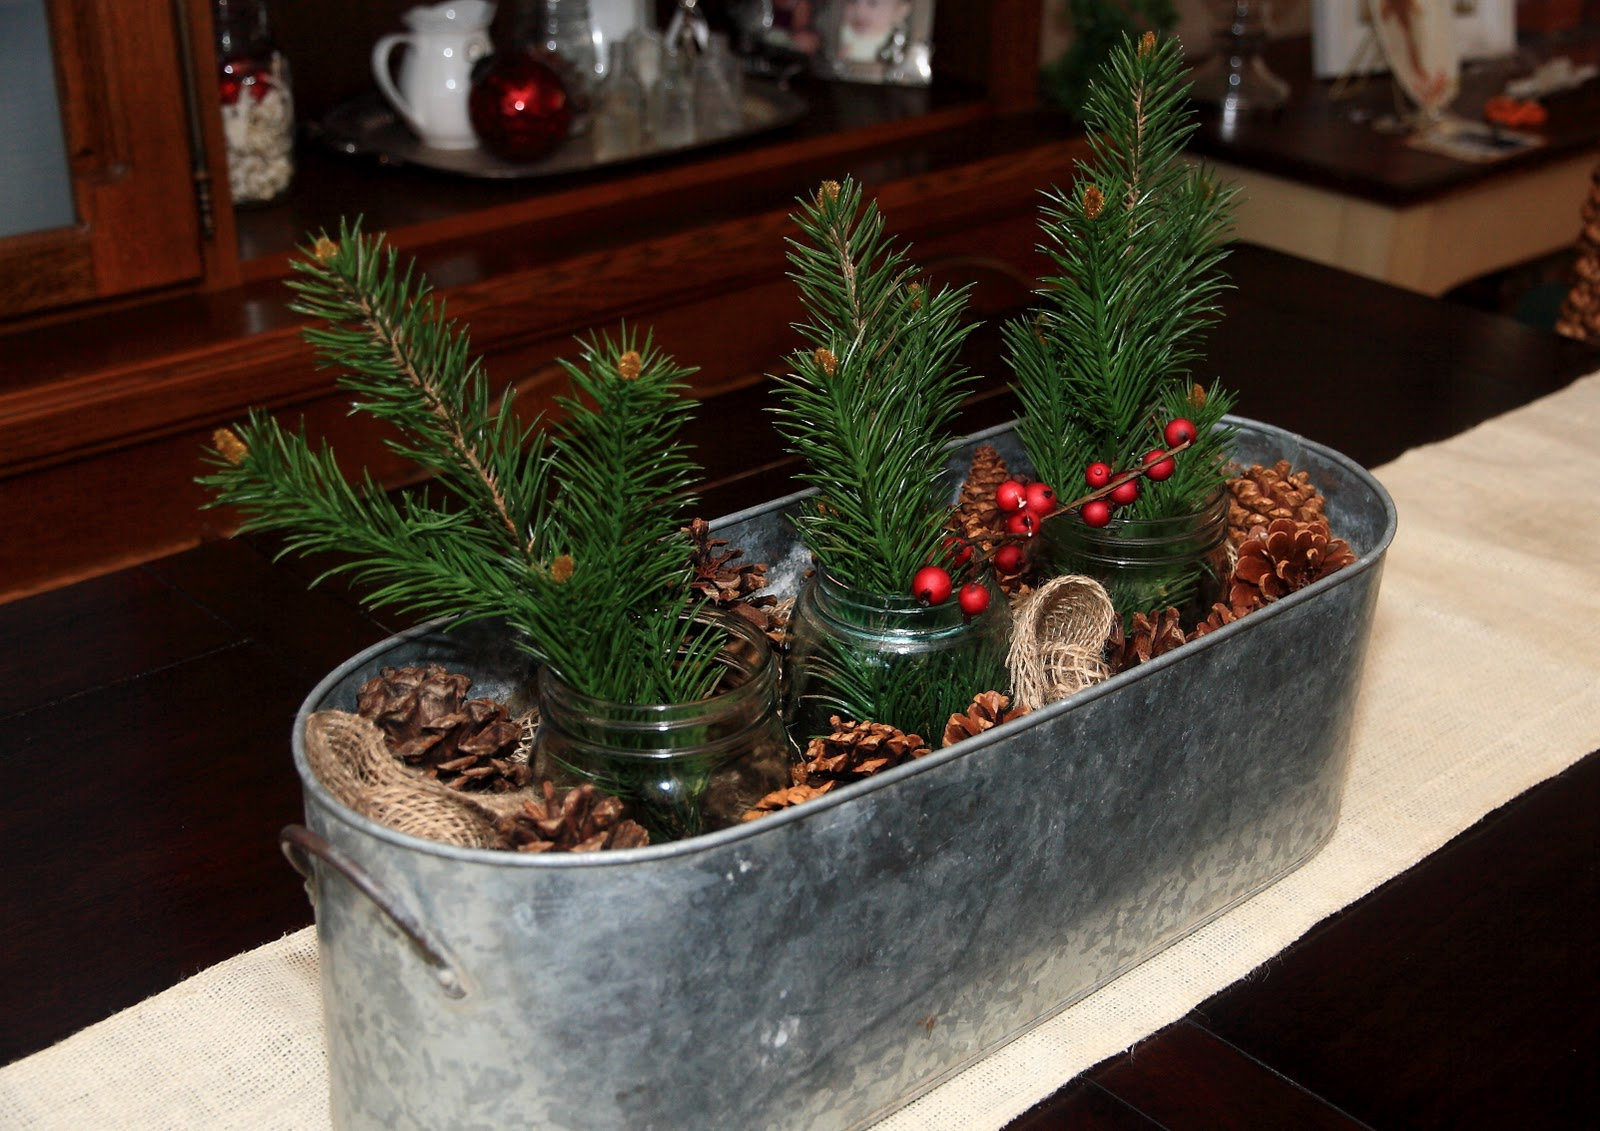 Rustic christmas table decorations - photo#24